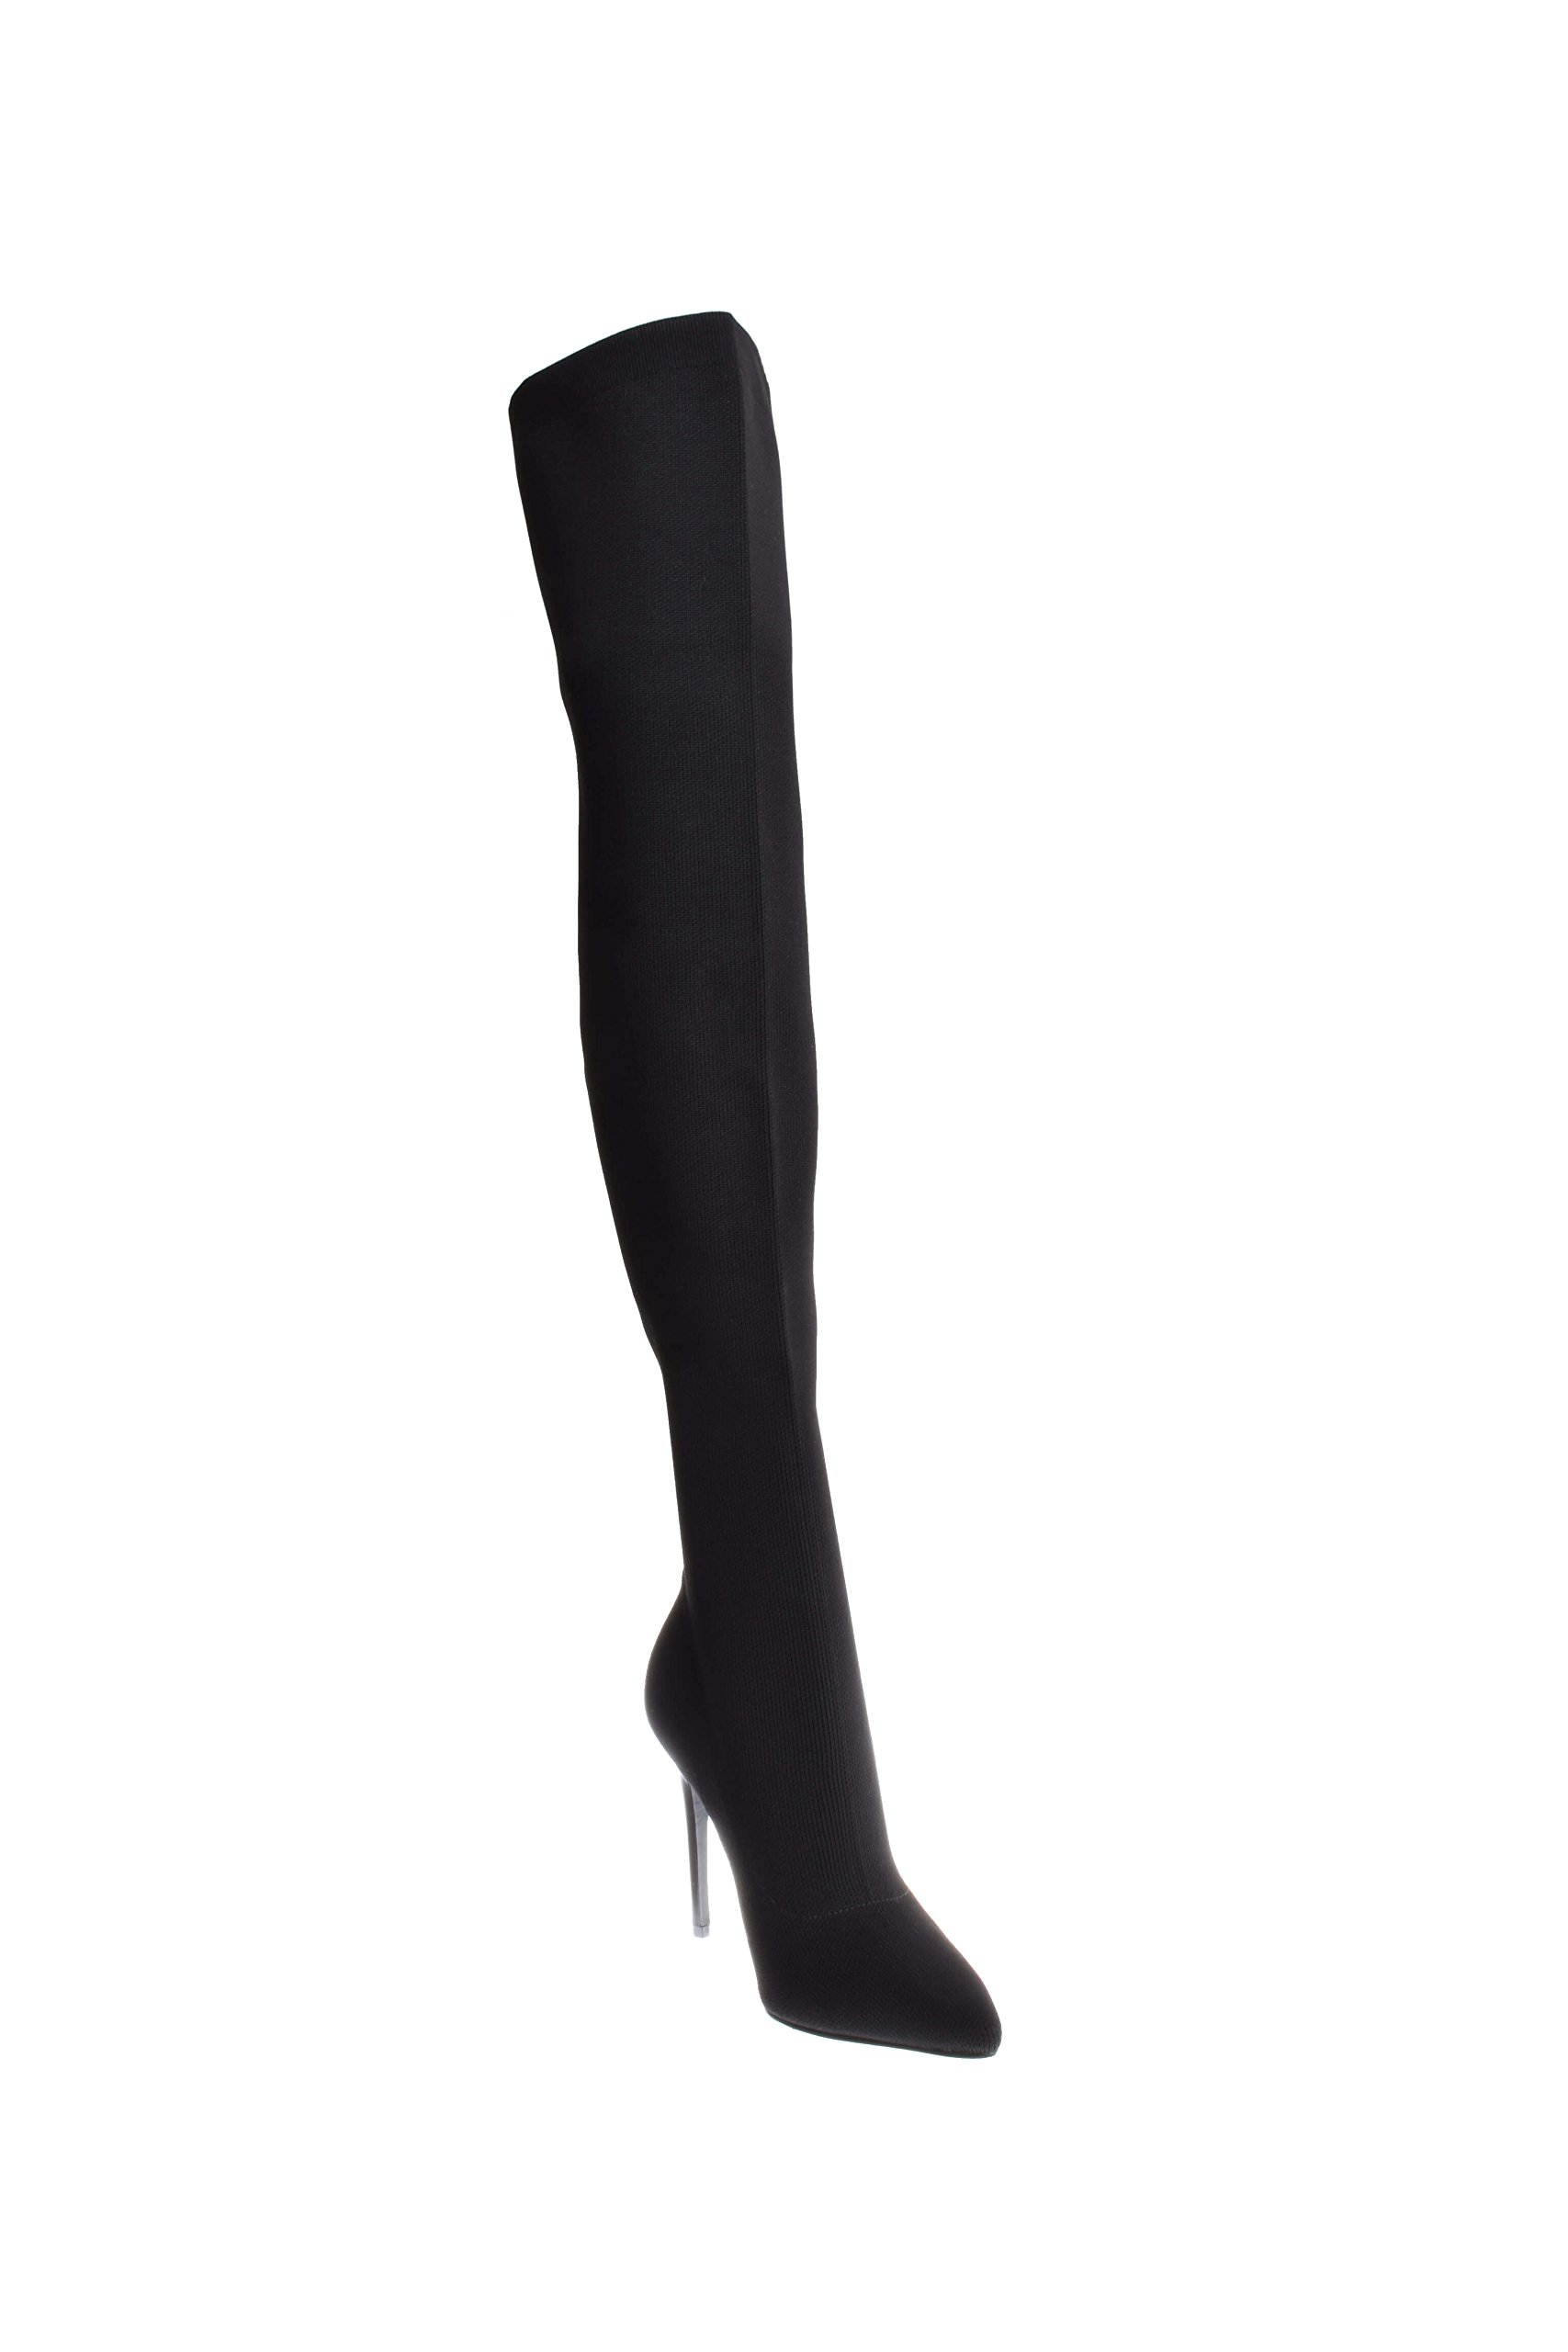 KENDALL + KYLIE Women's Anabel II Thigh High Stretch Boots, Black, 9.5 B(M) US